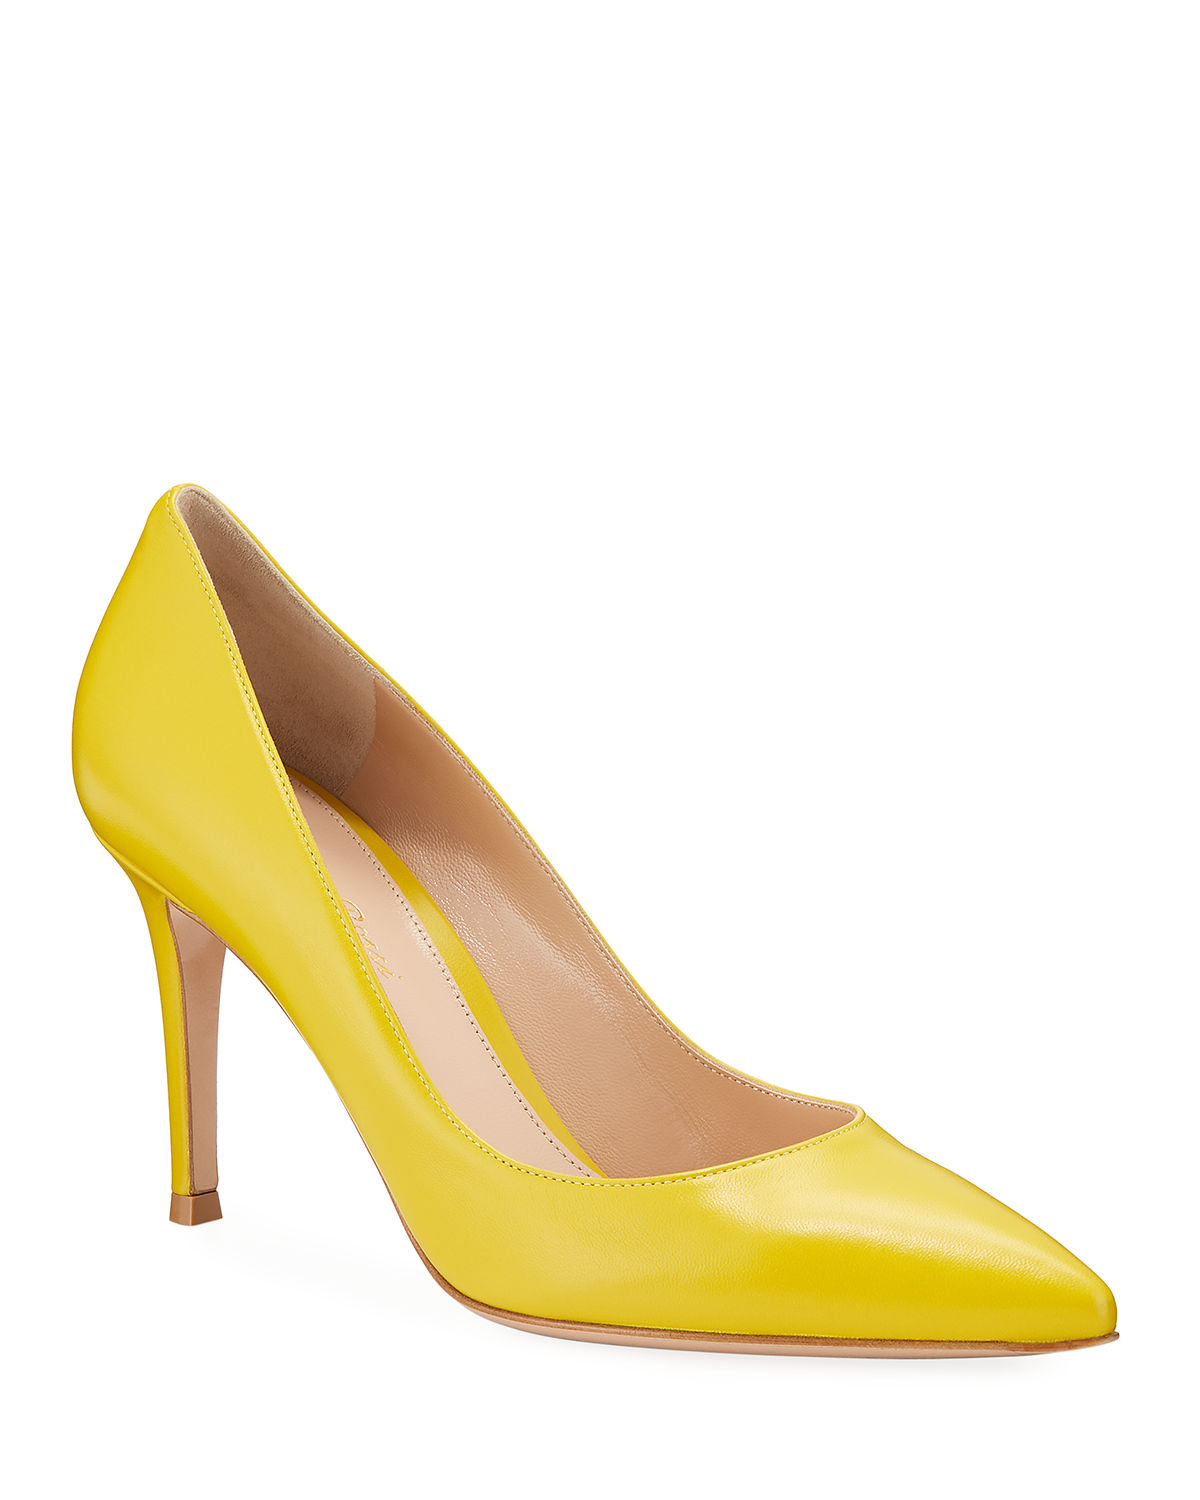 Gianvito Rossi High-heels NAPA GLOVE POINTED PUMPS